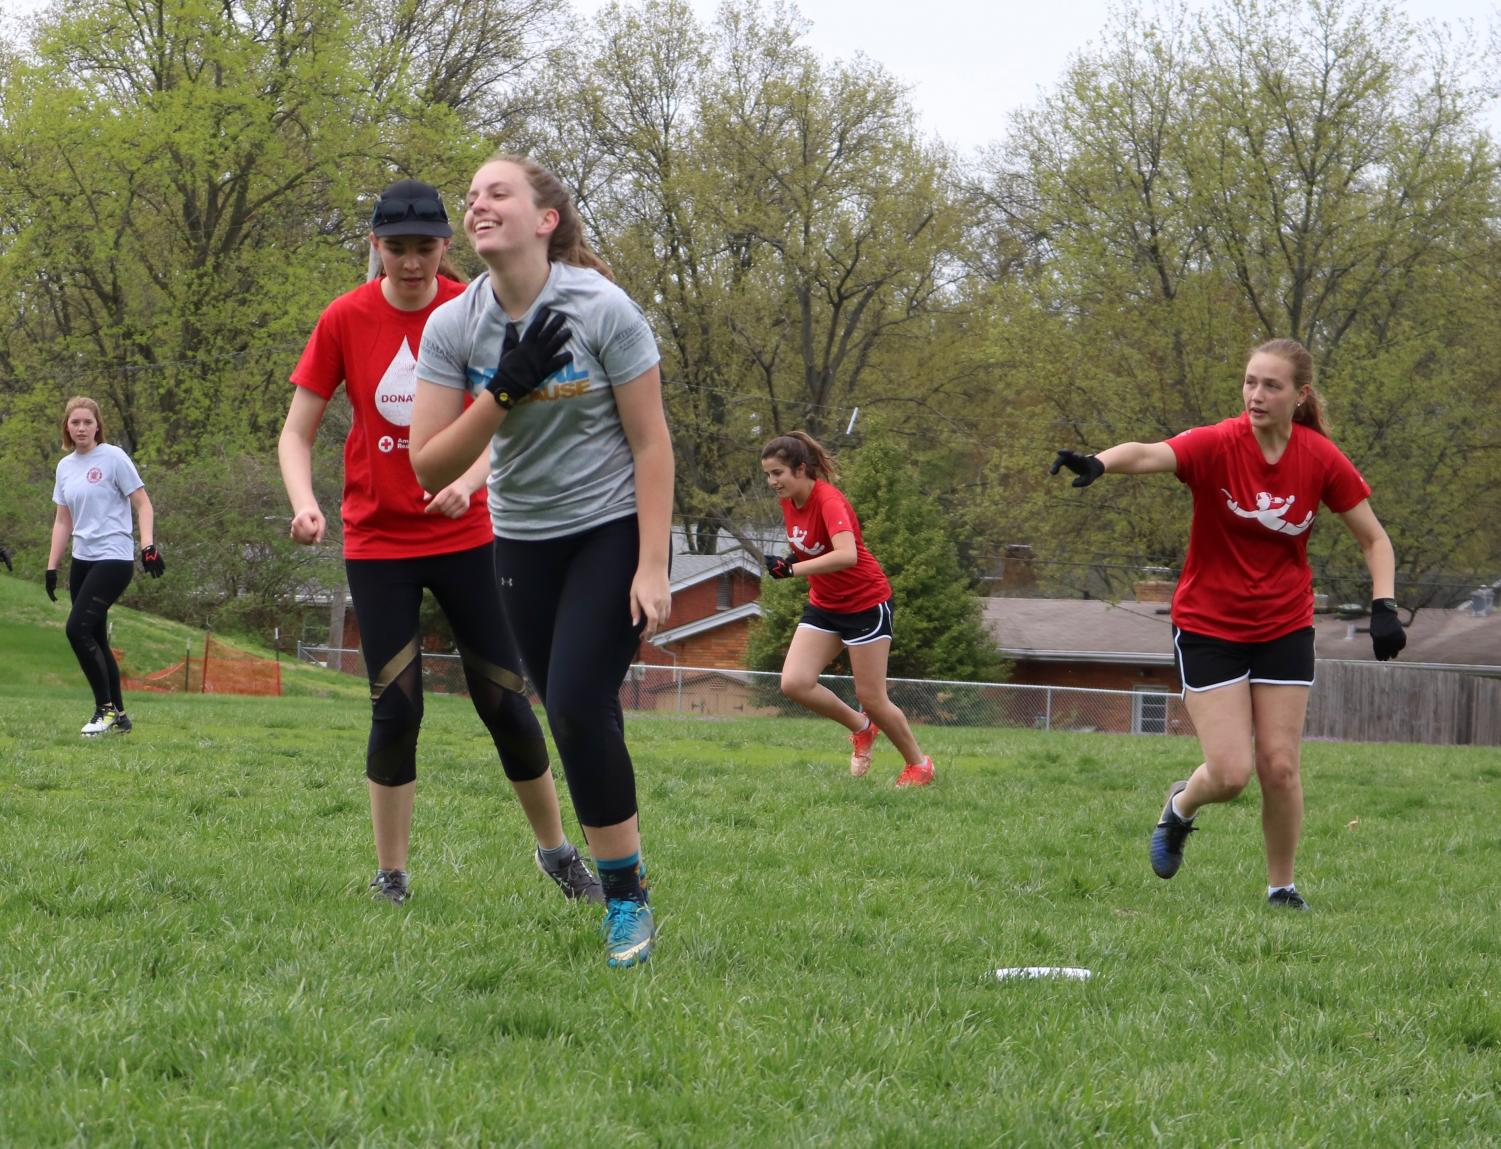 Katie+Hastings%2C+junior%2C+talks+to+teammates+as+she+picks+up+the+disc+after+the+turnover.+